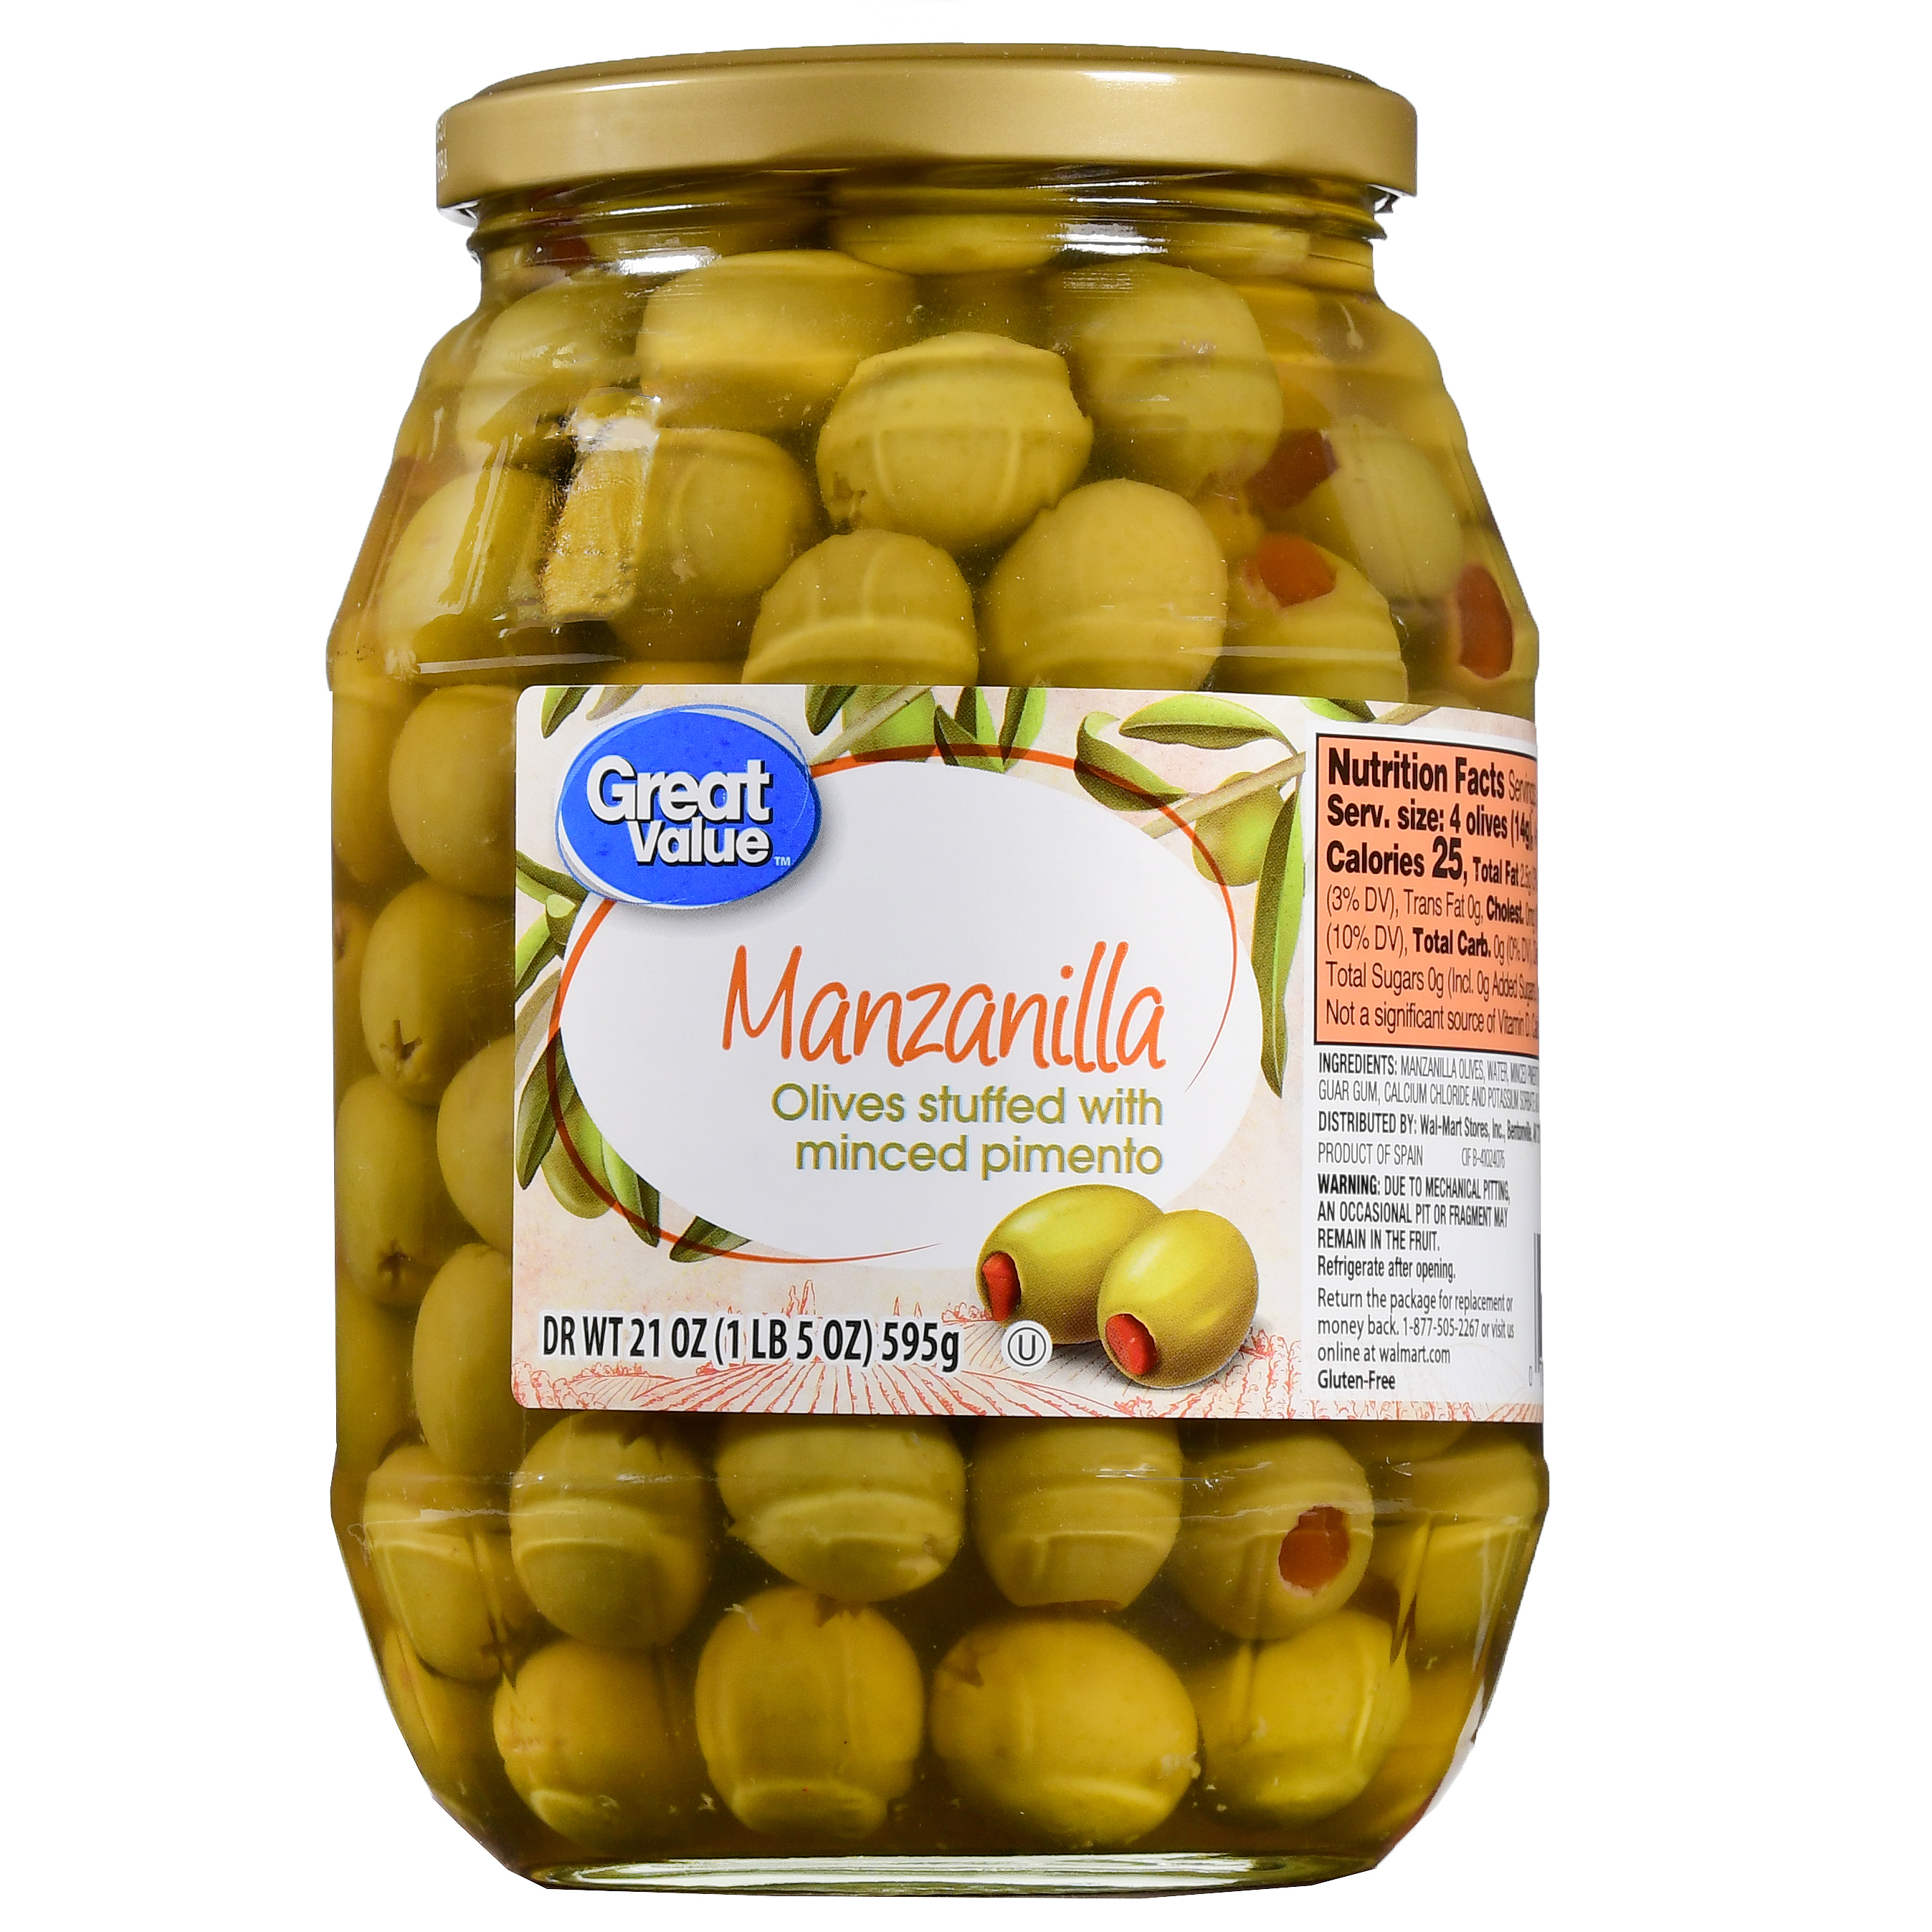 Great Value Manzanilla Olives Stuffed with Minced Pimiento, 21 oz by Wal-Mart Stores, Inc.